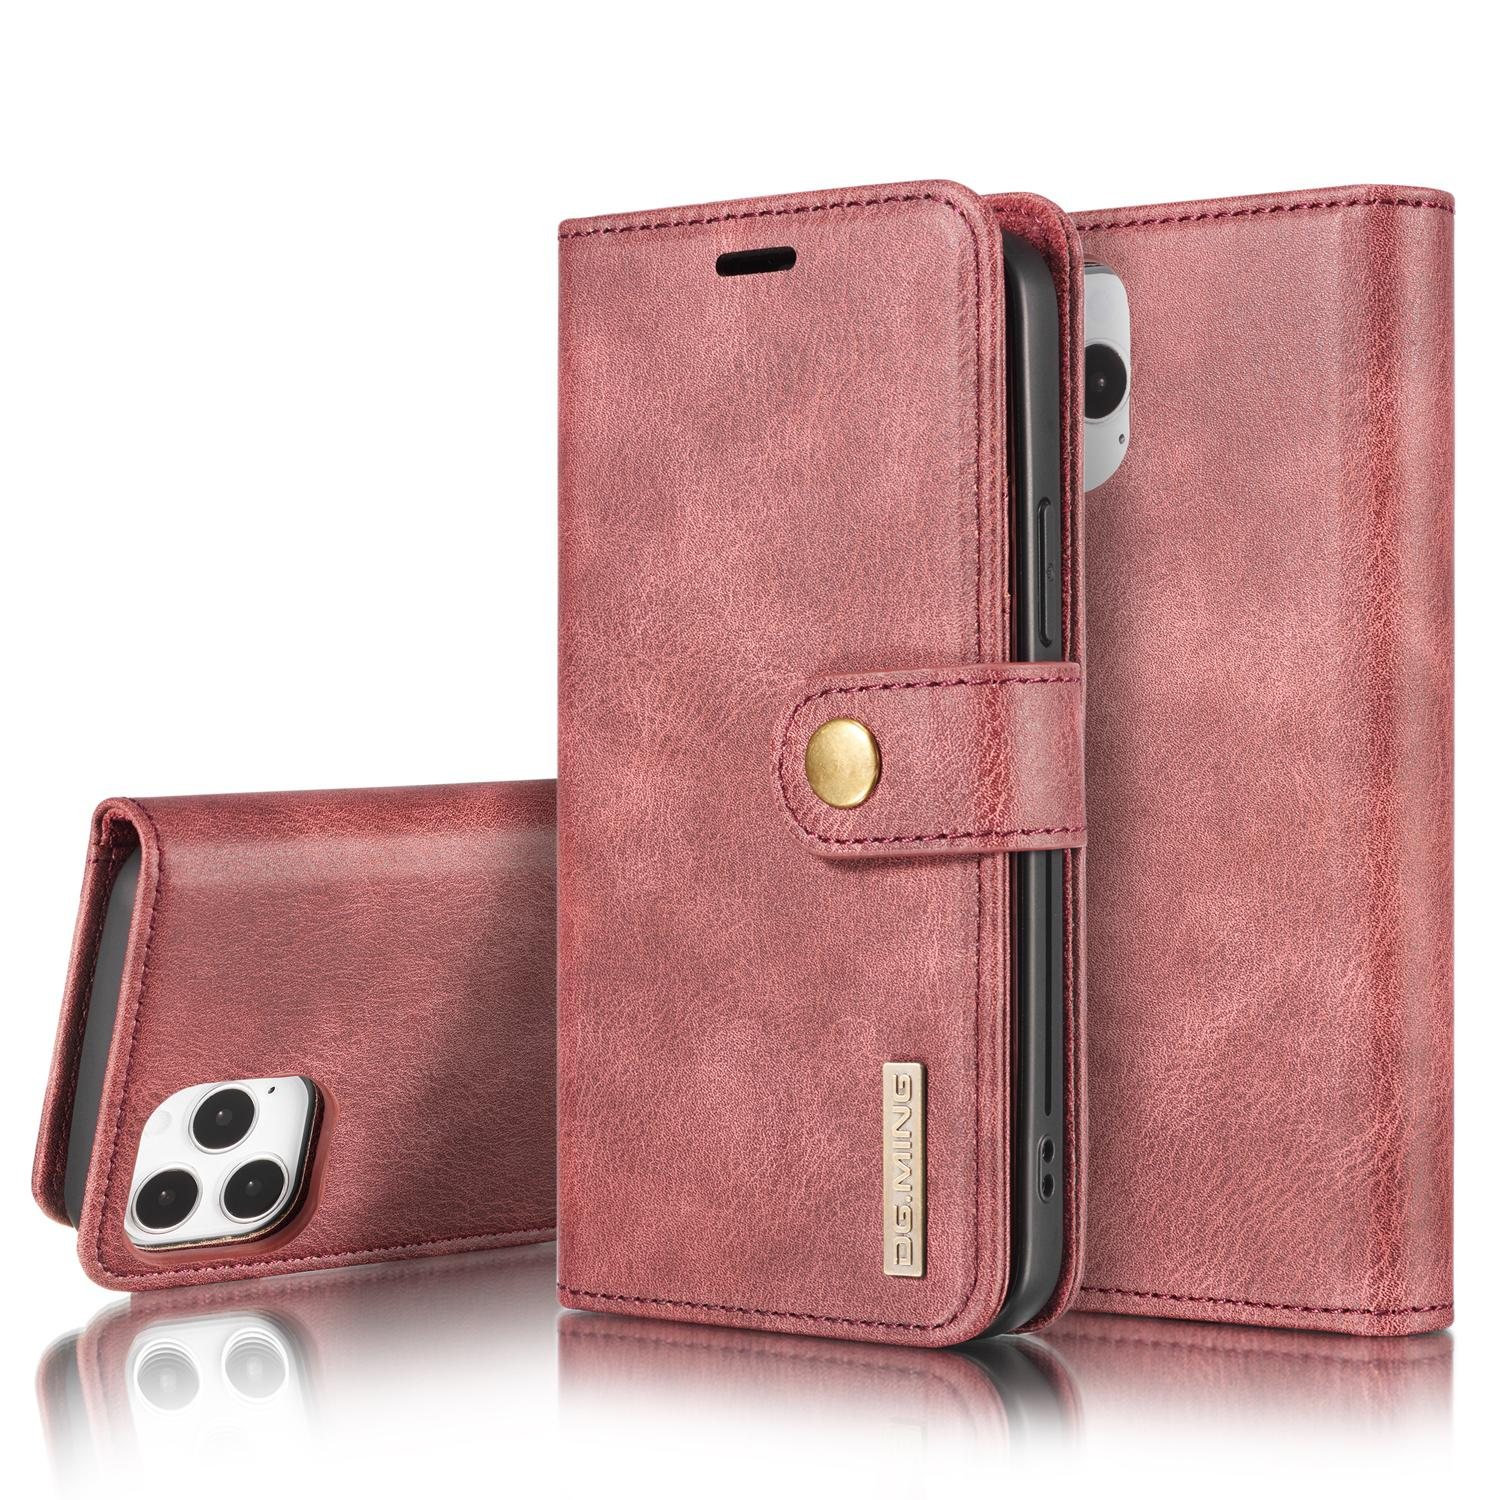 Magnet Wallet iPhone 12 Pro Max Red